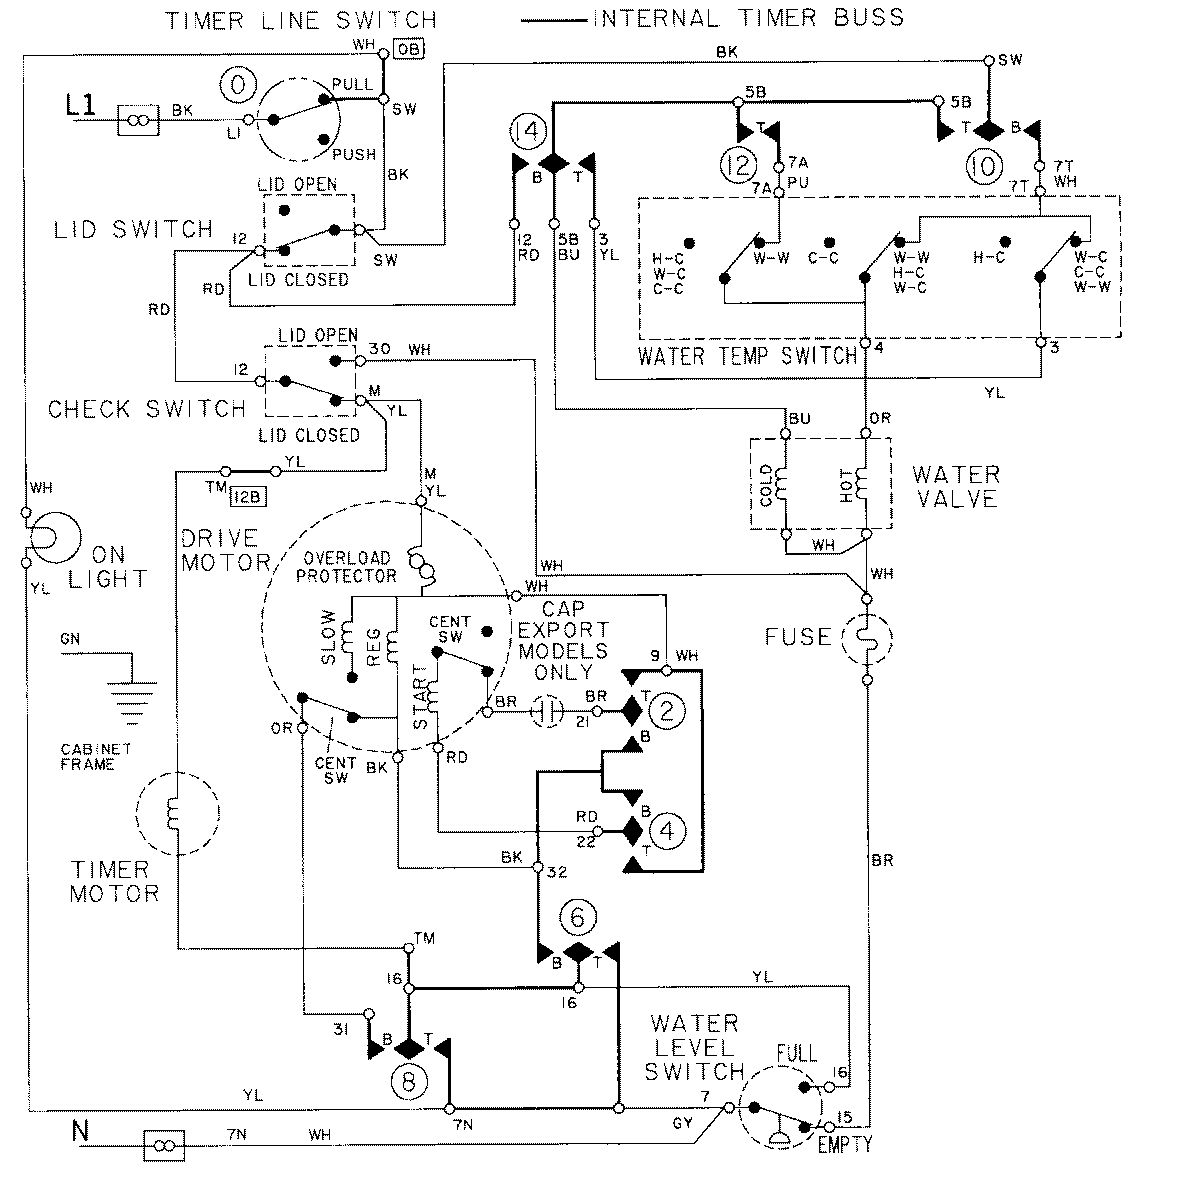 maytag washer wiring diagram Collection-Maytag Washer Wiring Diagram Awesome Maytag Maytag Laundry Parts Model Lat9604aae 12-h